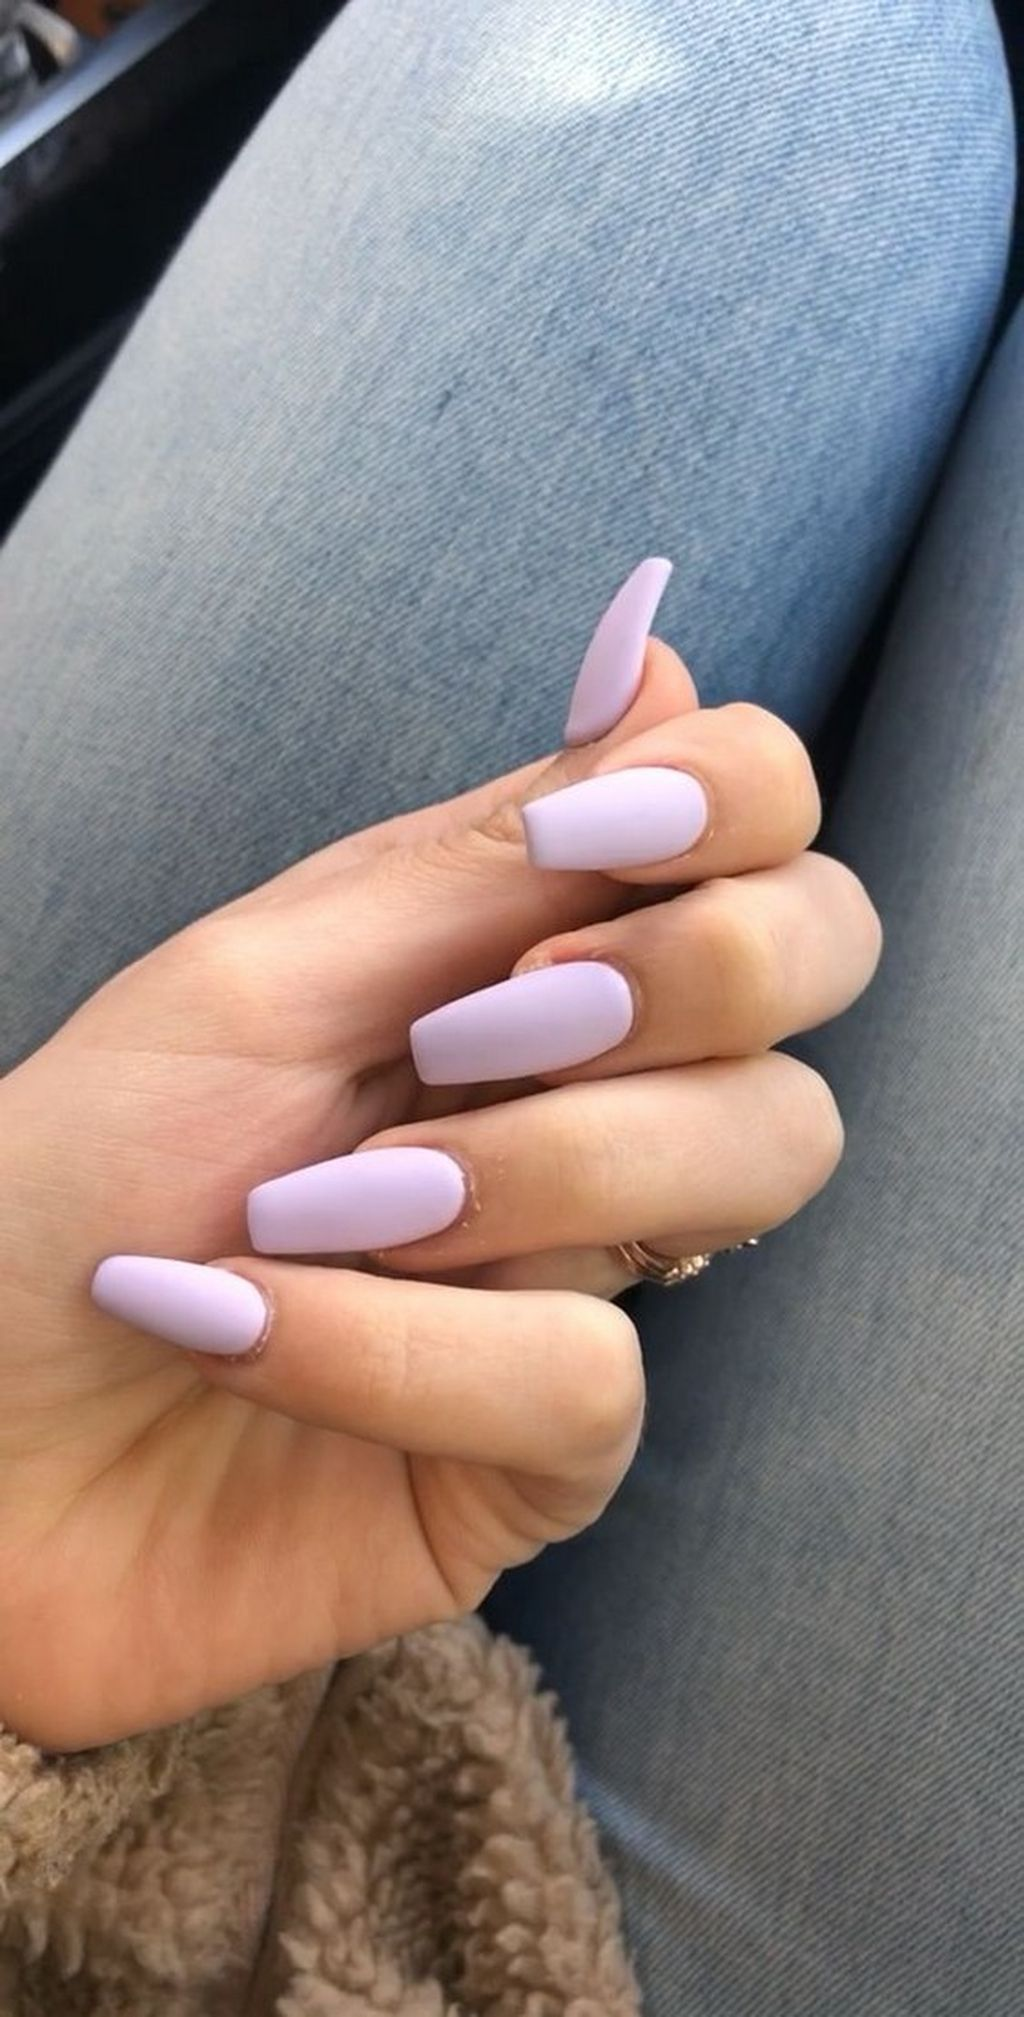 20 Charming Acrylic Nail Designs Ideas For Summer To Try In 2019 Interiordesign Kitchen Bedro Purple Acrylic Nails Short Acrylic Nails Simple Acrylic Nails